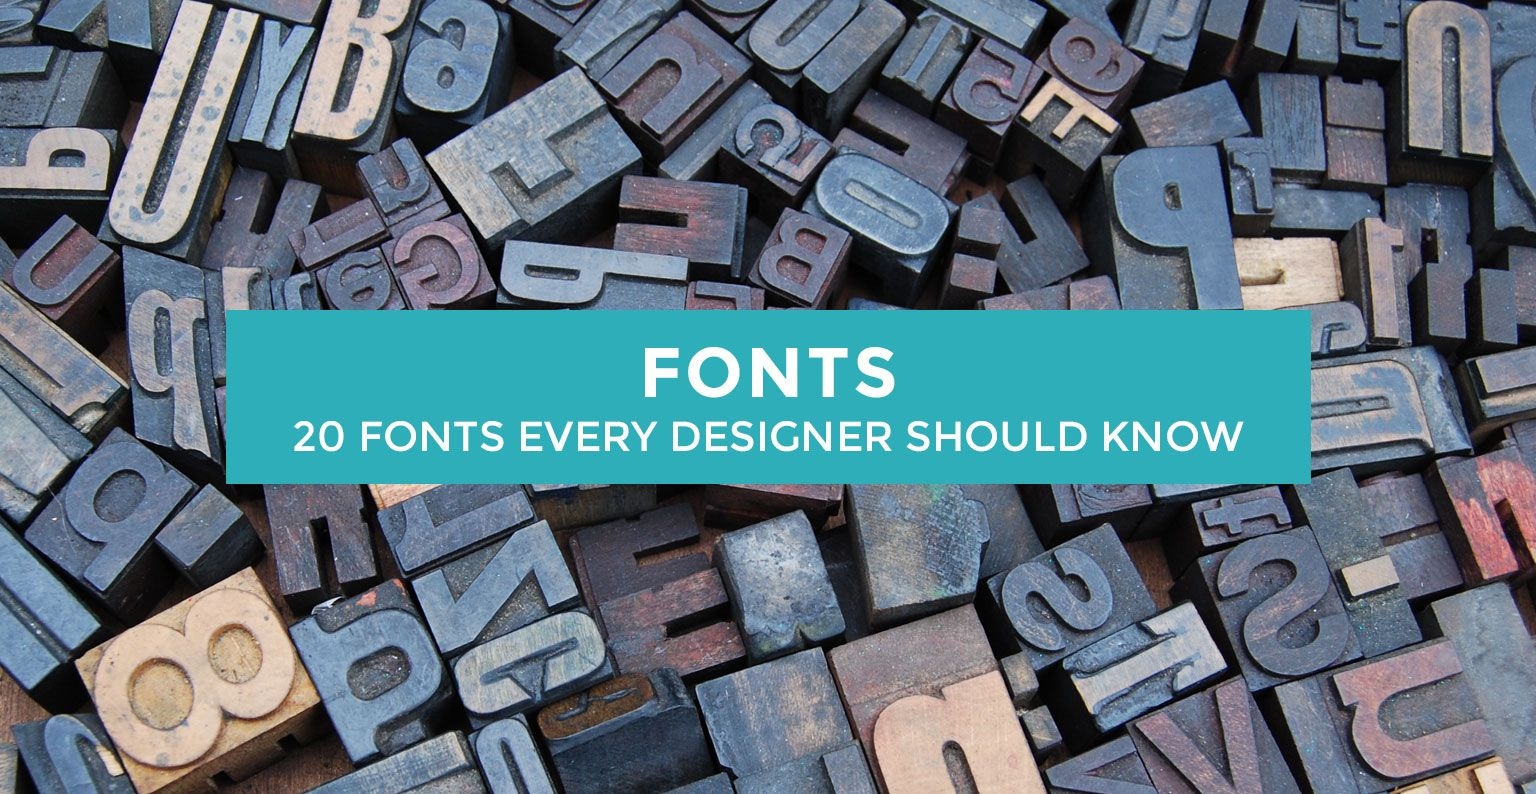 20 Fonts Every Designer Should Know